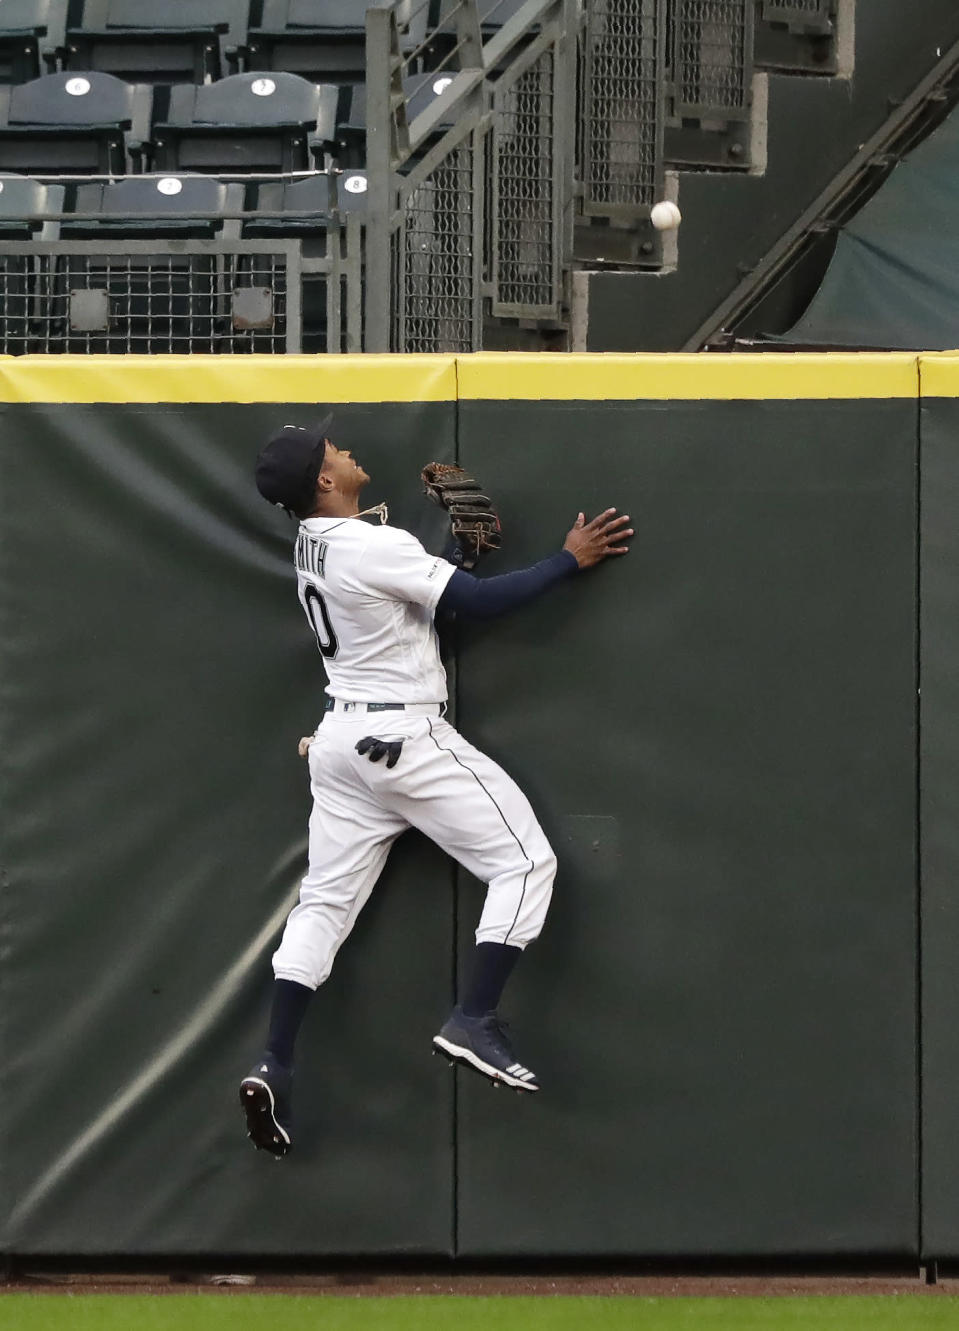 CORRECT STHAT HOME RUN WAS BY JORGE SOLER IN THE THIRD INNING - Seattle Mariners center fielder Mallex Smith leaps at the wall but is unable to catch a home run by Kansas City Royals' Jorge Soler during the third inning of a baseball game Tuesday, June 18, 2019, in Seattle. (AP Photo/Elaine Thompson)